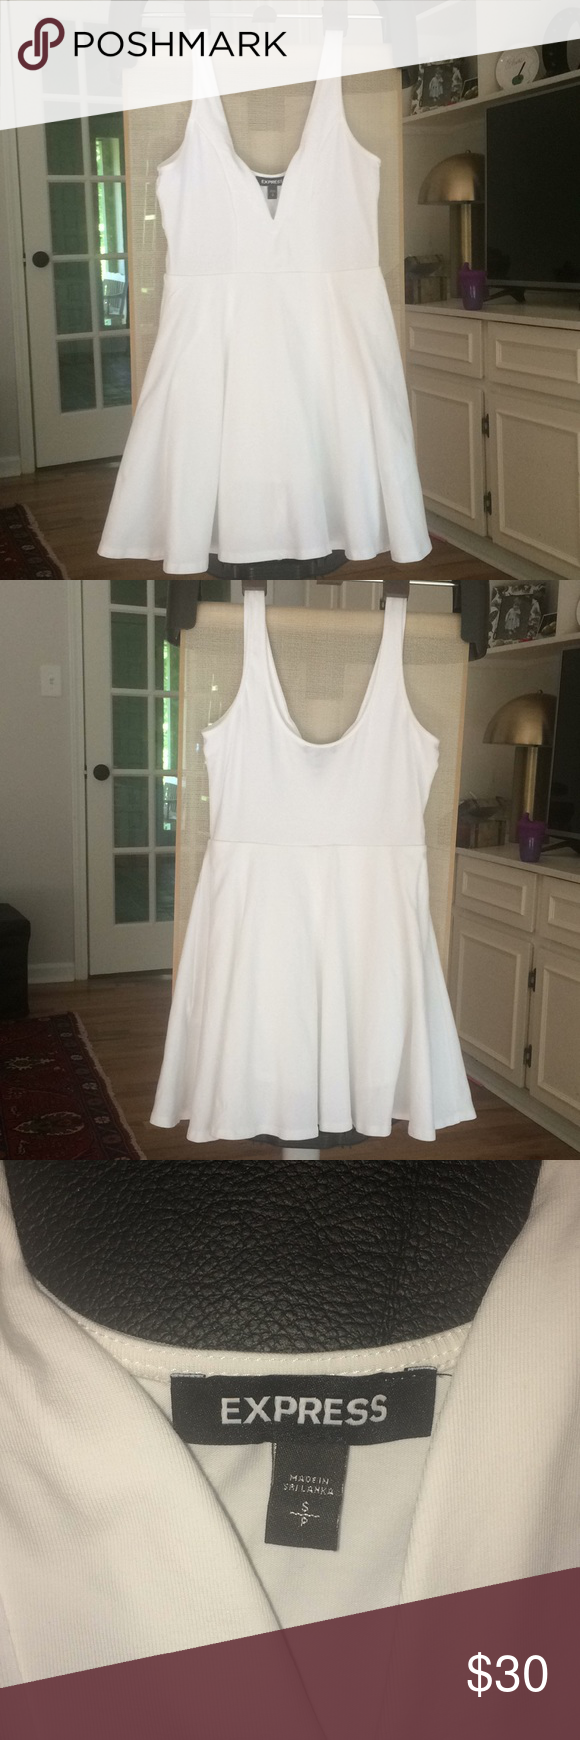 b03c7c1dd27c White Deep V-Wire Fit And Flare Skort Dress Small This white flirty fit and flare  dress has a deep v-wire neckline